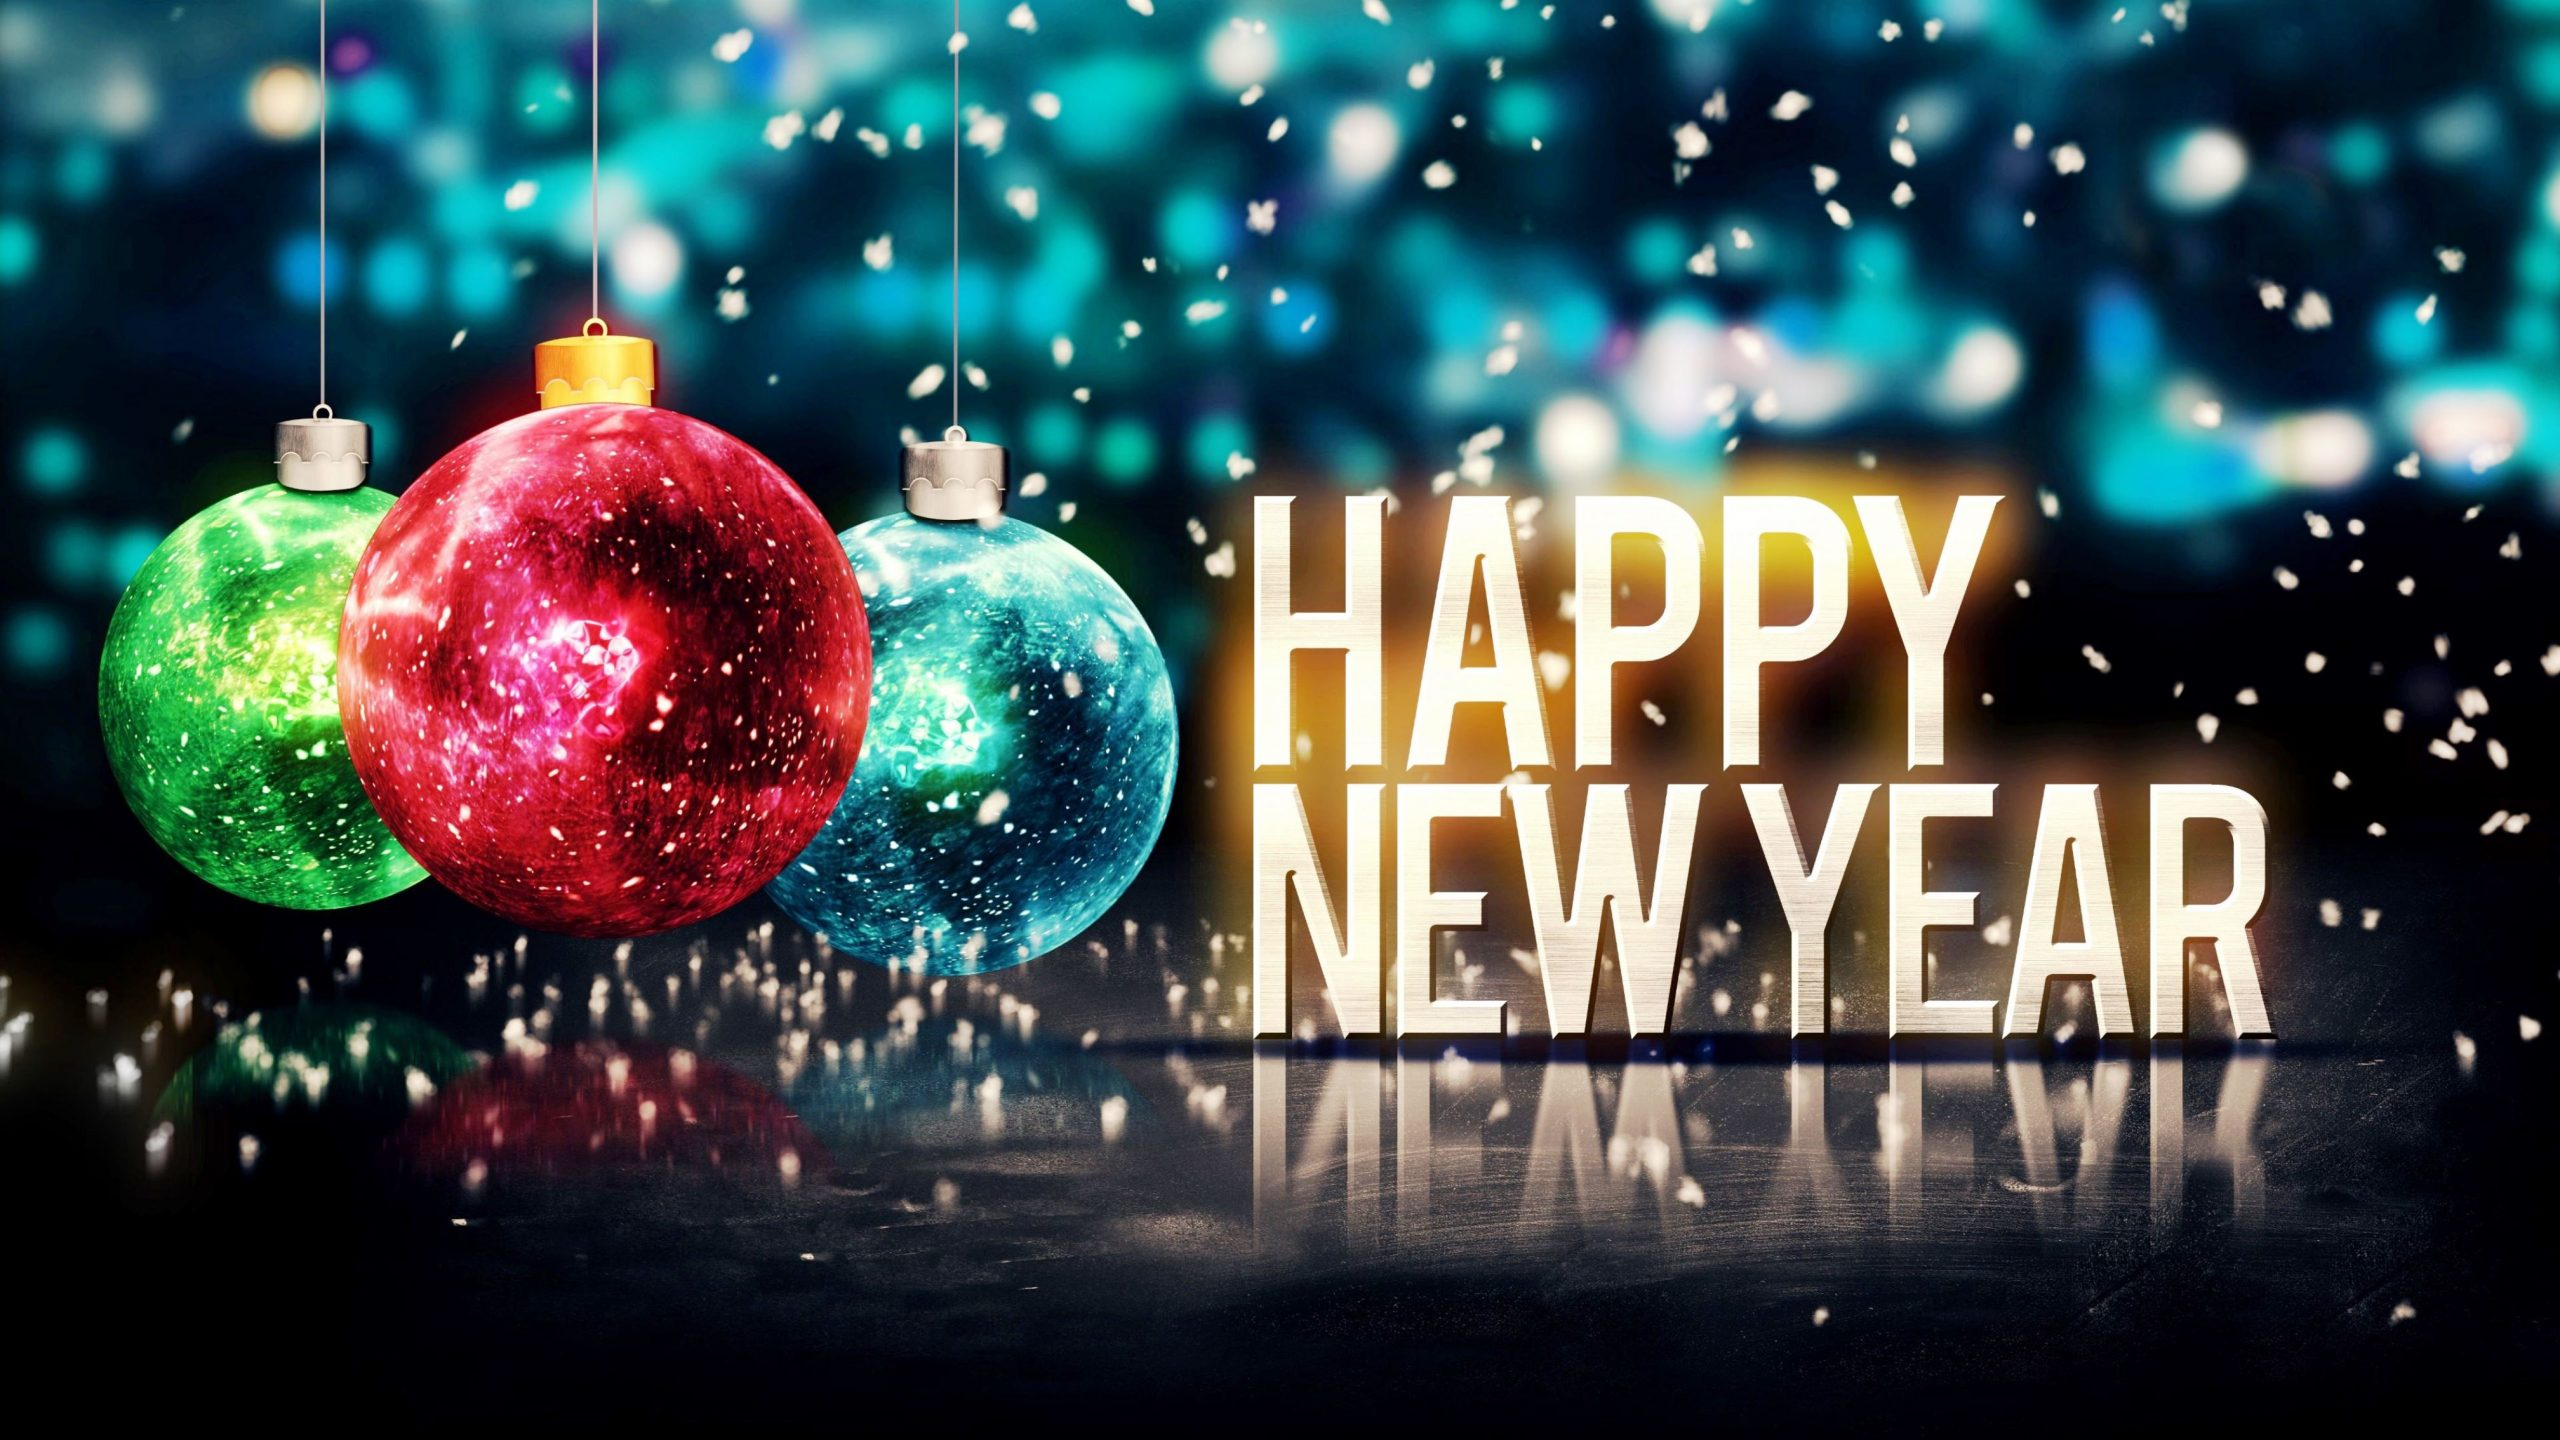 Happy New Year Wallpapers And Greetings (9)